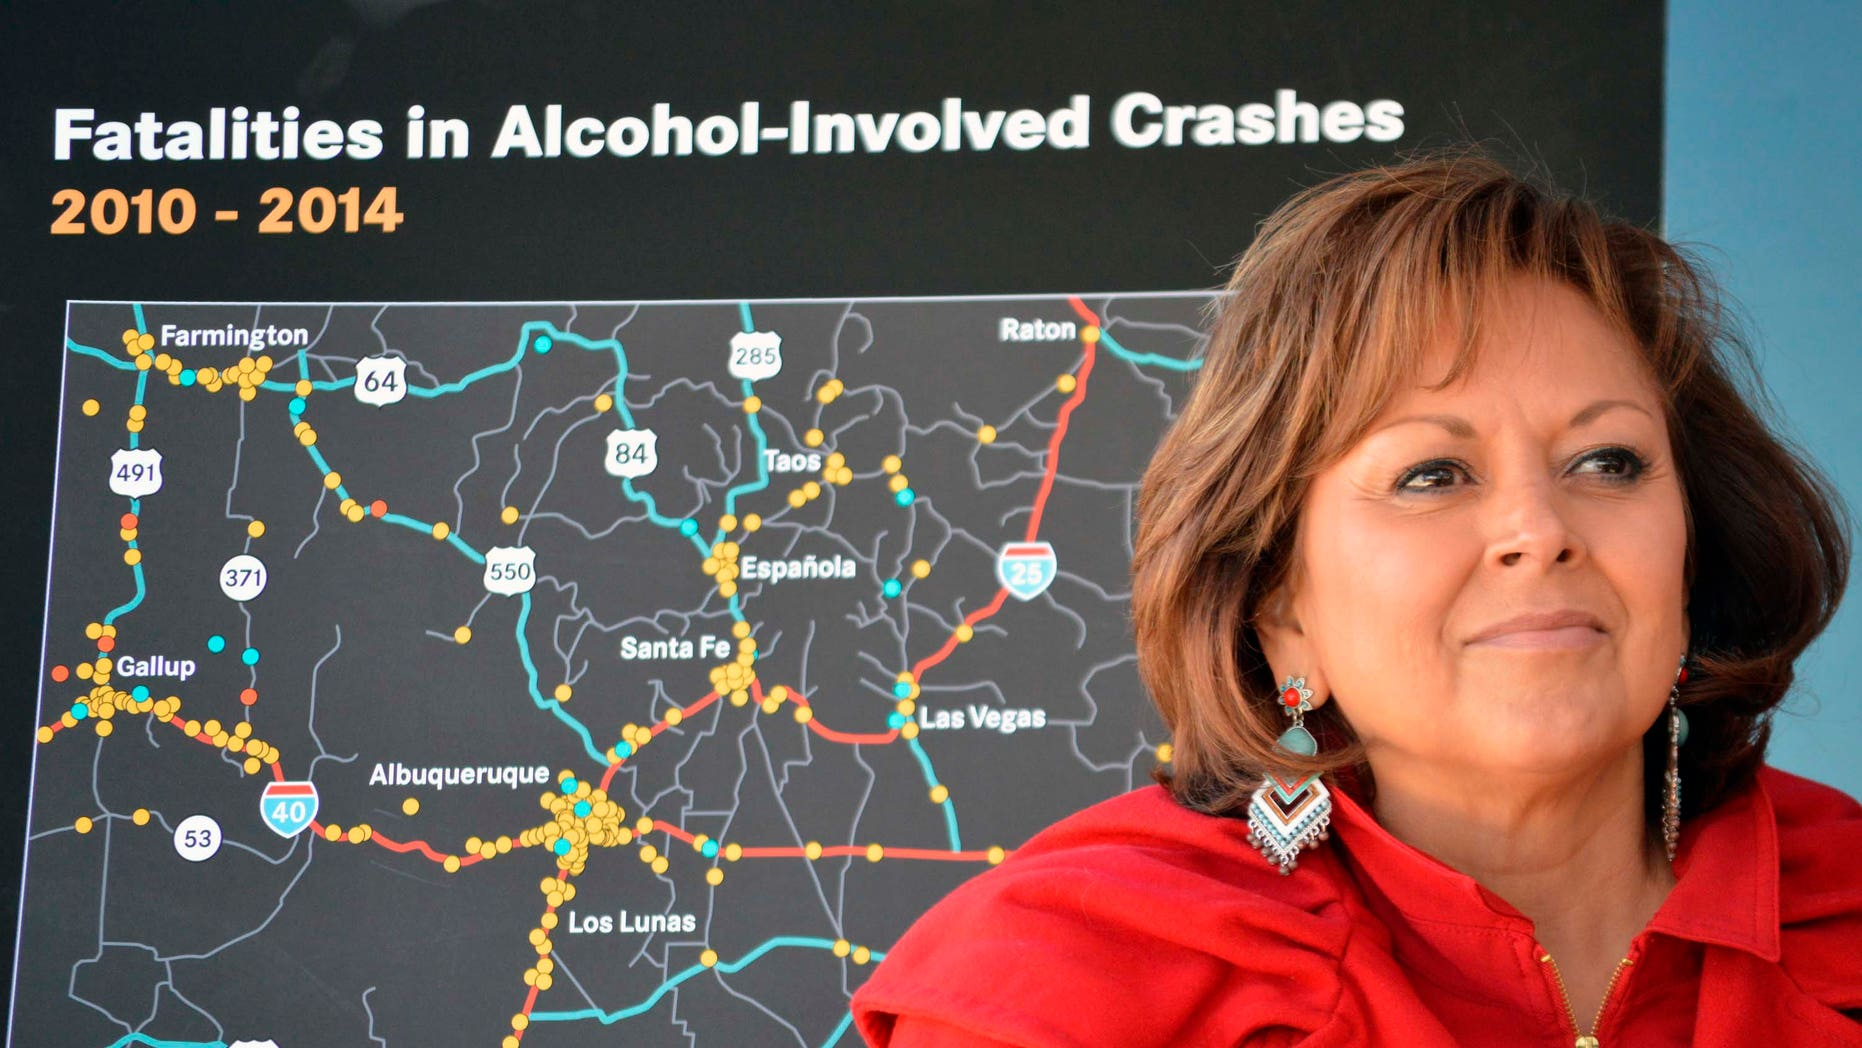 New Mexico Gov. Susana Martinez stands in front of a state map of drunken-driving deaths during a news conference in Albuquerque, N.M. on Monday, Dec. 7, 2015. A recording from a Santa Fe police sergeant's belt tape suggests  Martinez was inebriated the night police responded to a complaint at a downtown hotel where the governor was hosting a holiday party. Santa Fe Police released the recording, Tuesday, Dec. 22, 2015, shedding more light on the Dec. 13 incident at the Eldorado Hotel and Spa. A clerk initially called dispatchers to report noise and that someone was throwing bottles from a hotel balcony. (AP Photo/Russell Contreras, File)